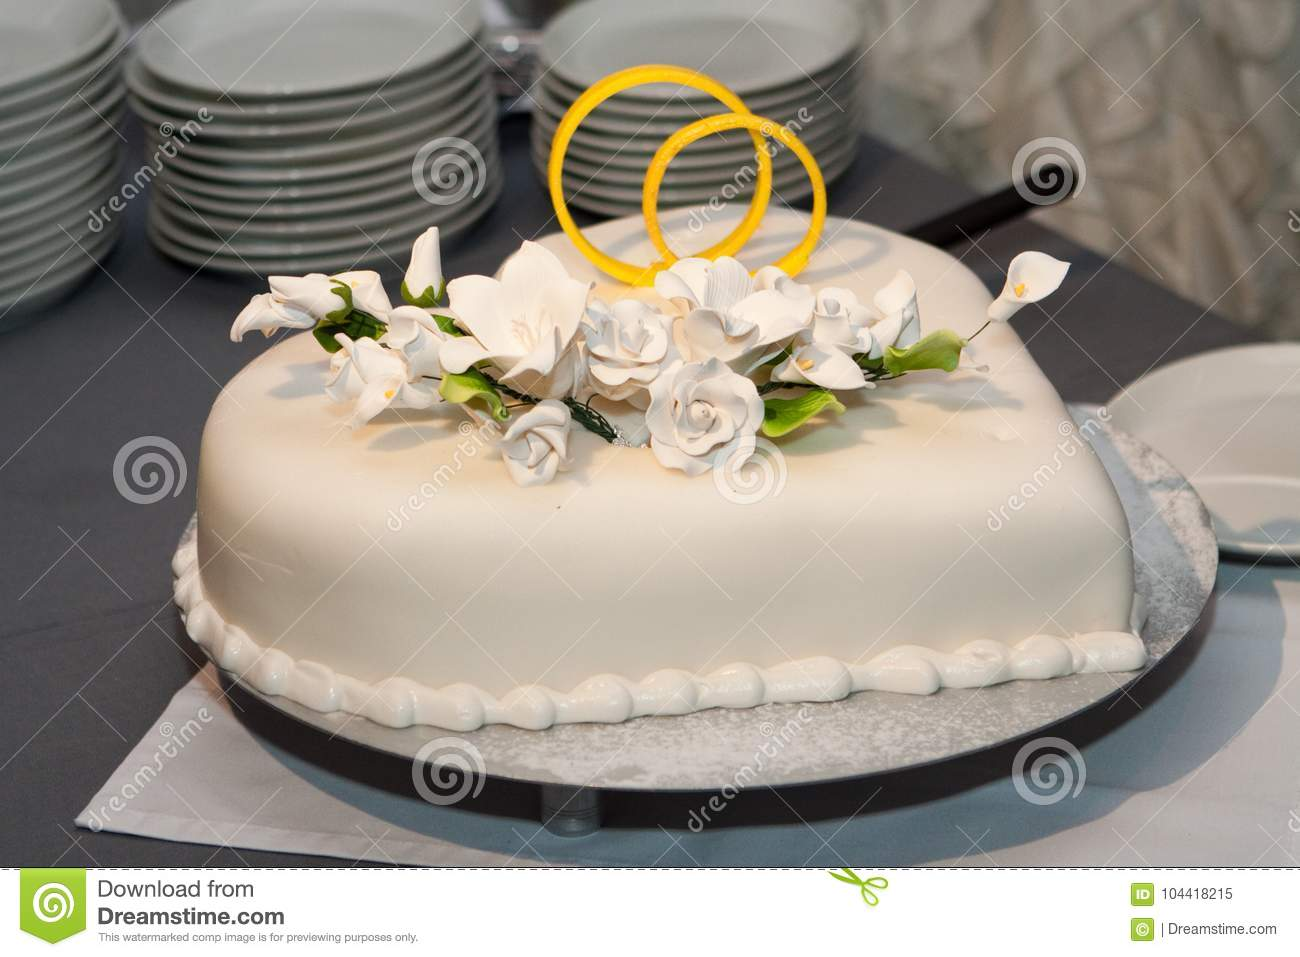 White Wedding Cake Decorated Flowers And Golden Rings Stock Image ...